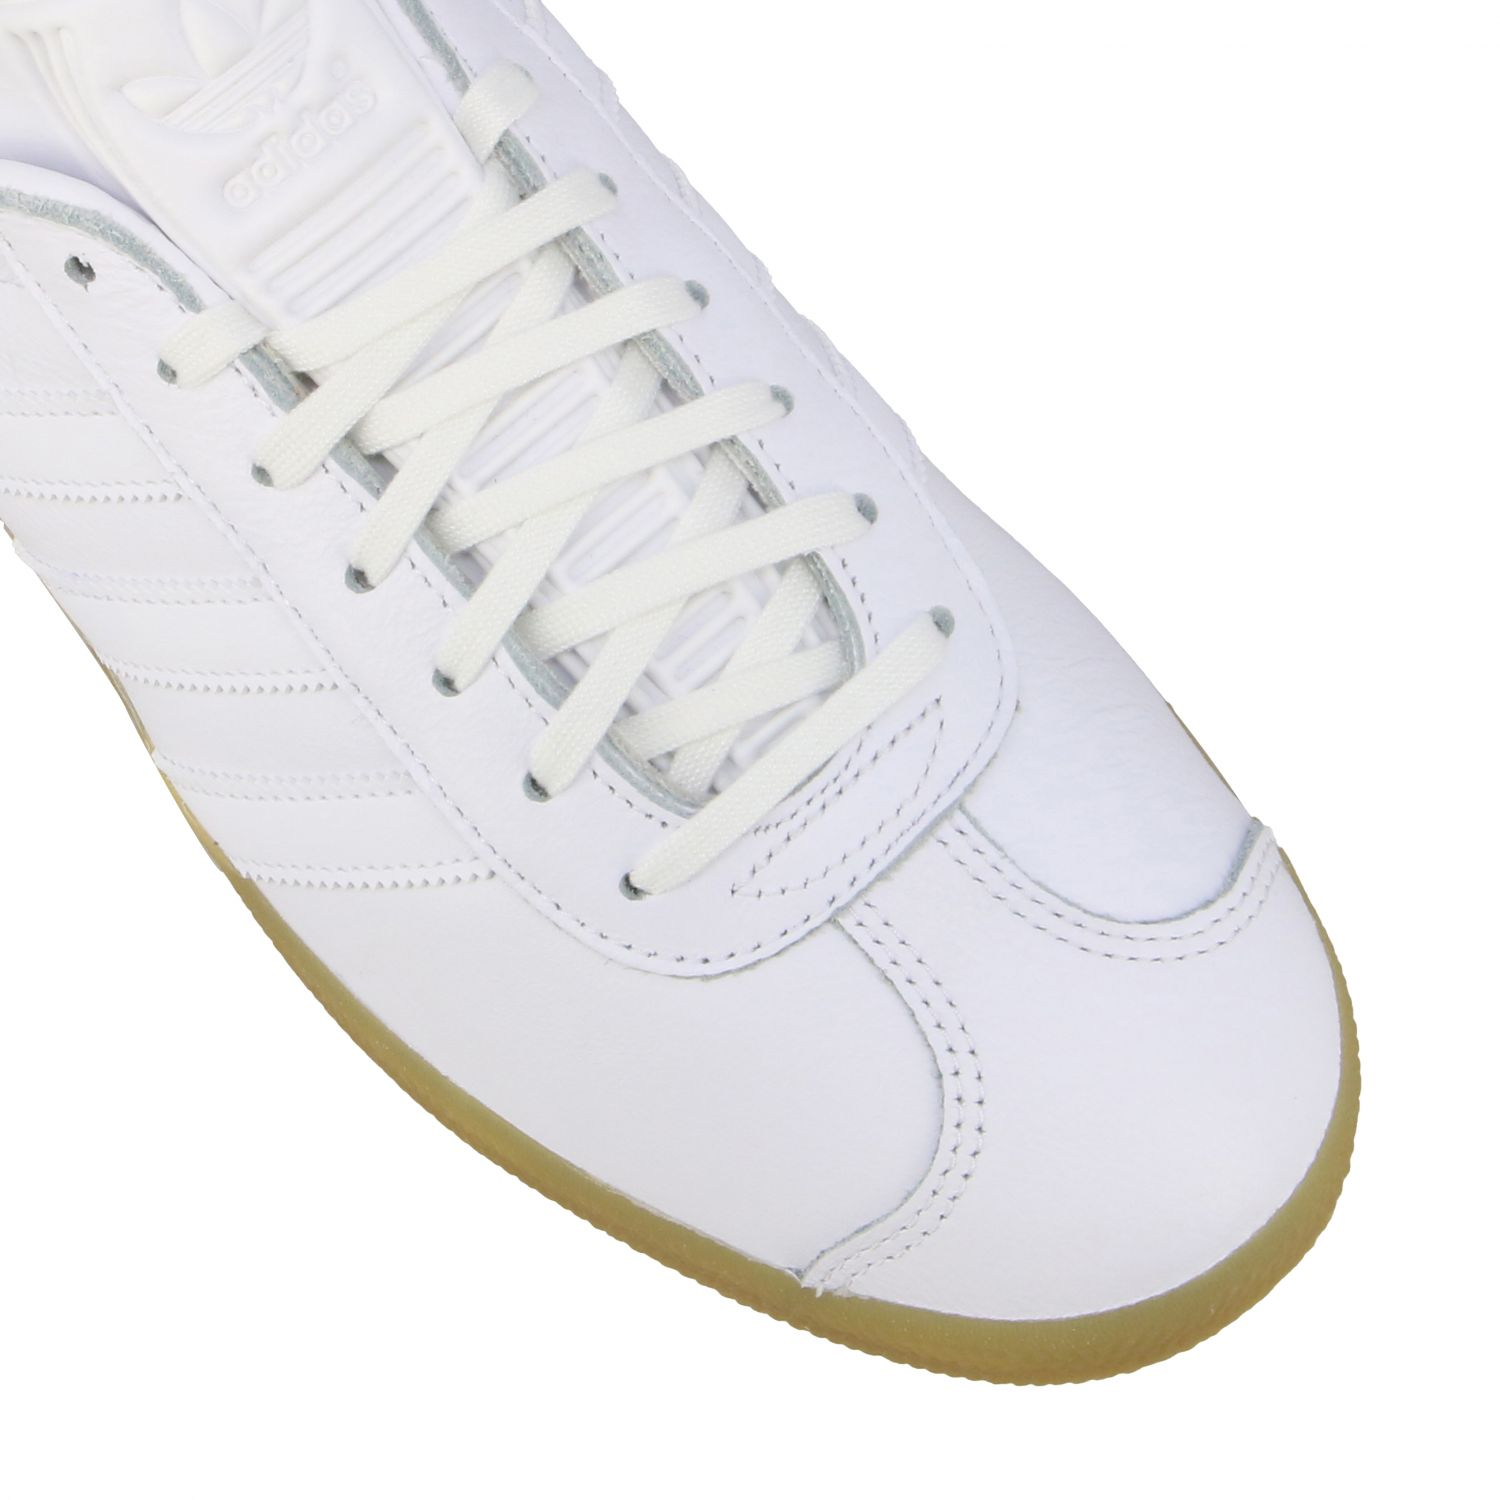 Sneakers Adidas Originals: Adidas Originals Gazelle leather sneakers with logo white 4